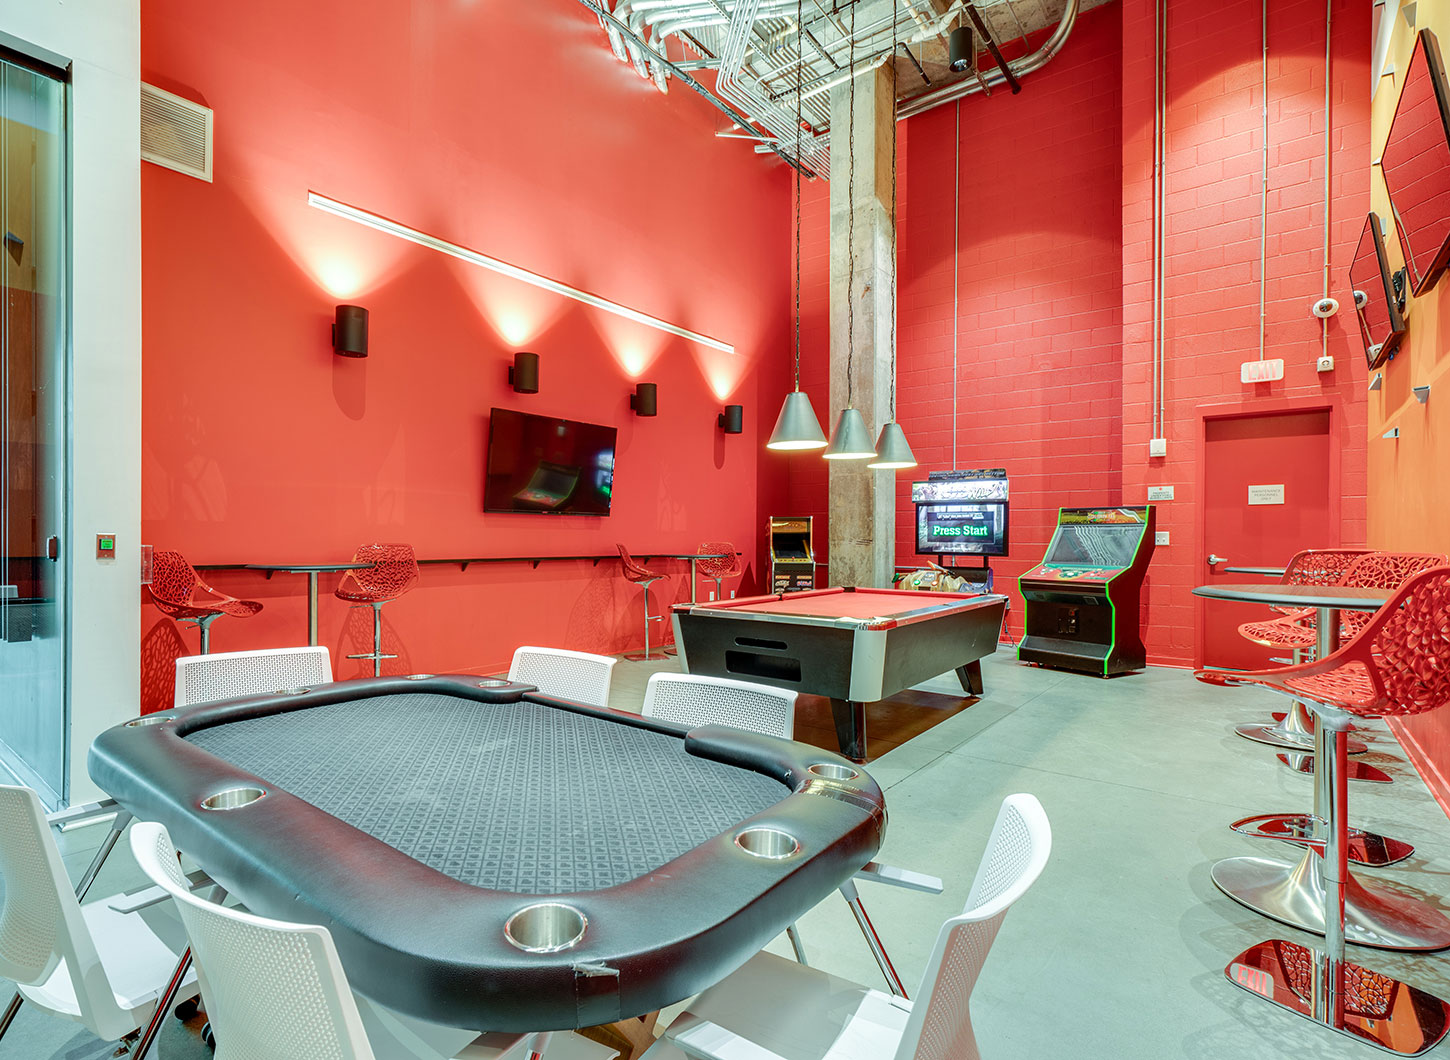 Stanhope Apartments game room